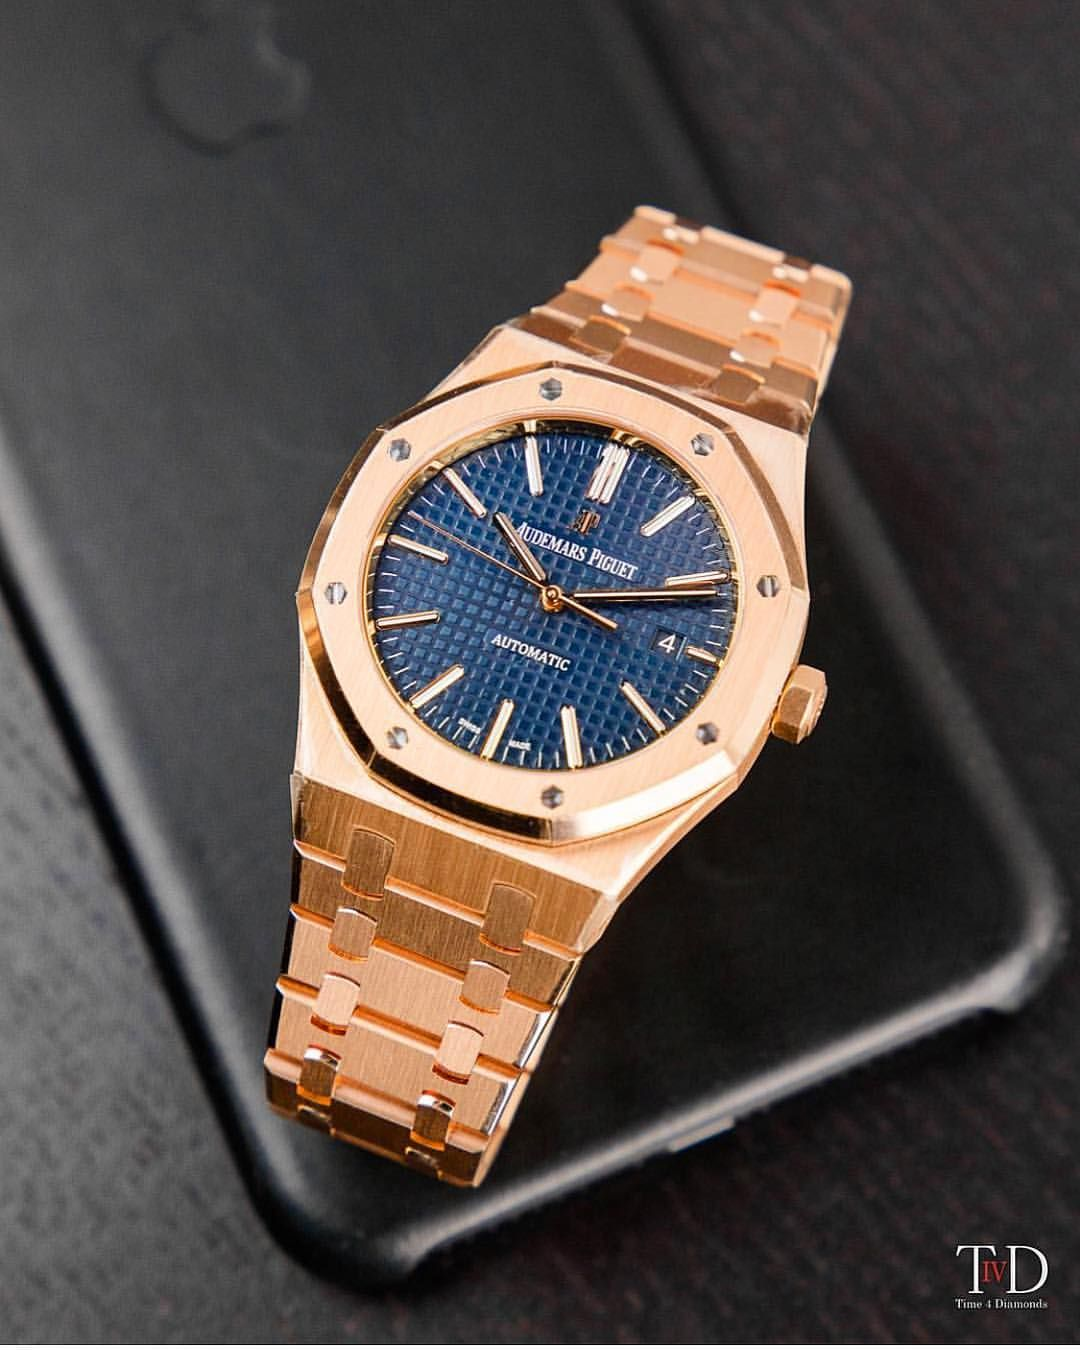 The 41mm Audemars Piguet Royal Oak In Rose Gold With Blue Dial